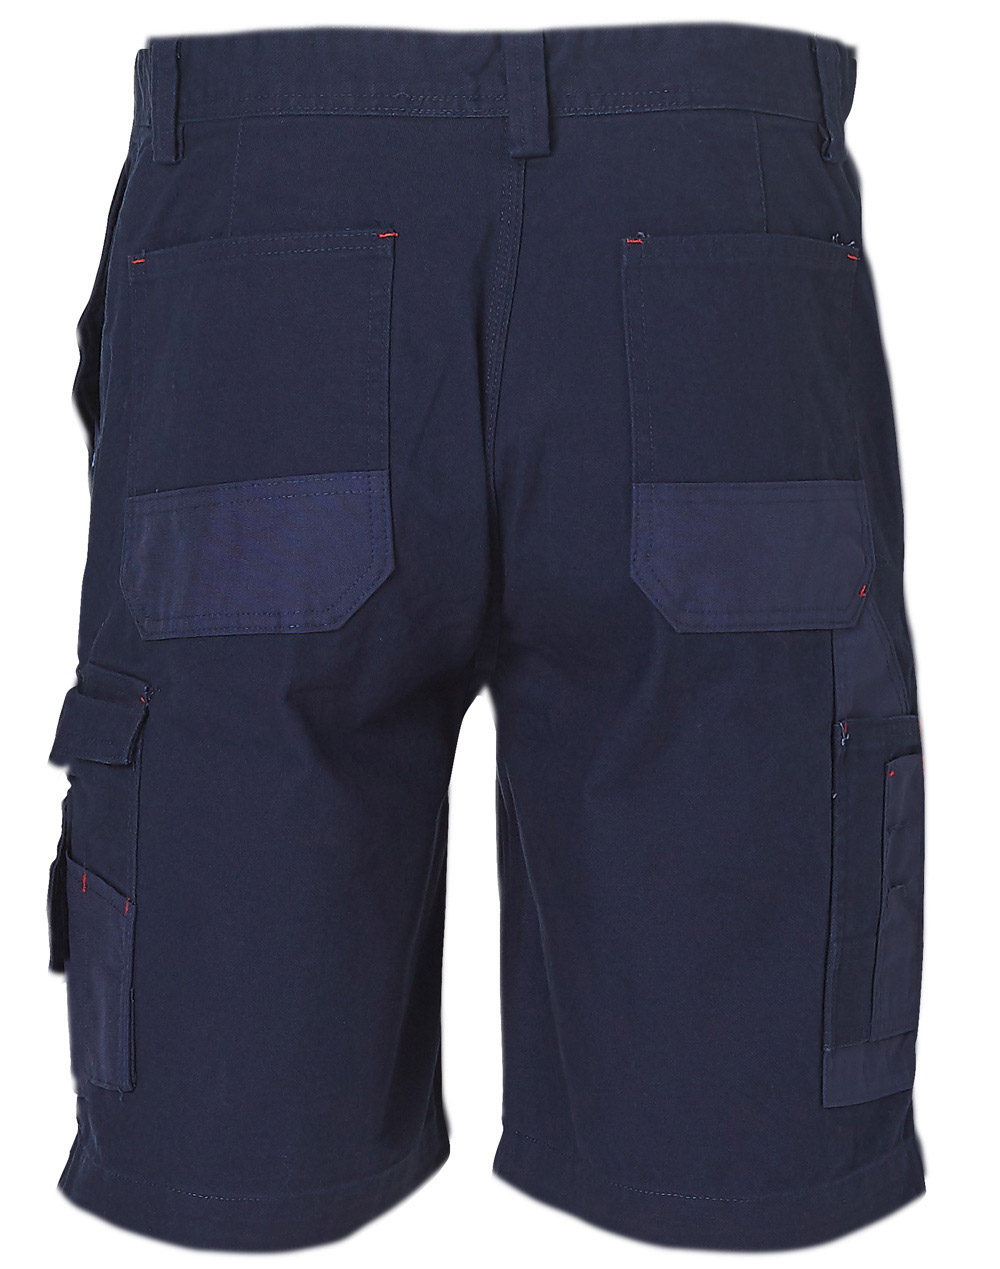 https://s3-ap-southeast-1.amazonaws.com/ws-imgs/WORKWEAR/WP11_Navy_Back.jpg